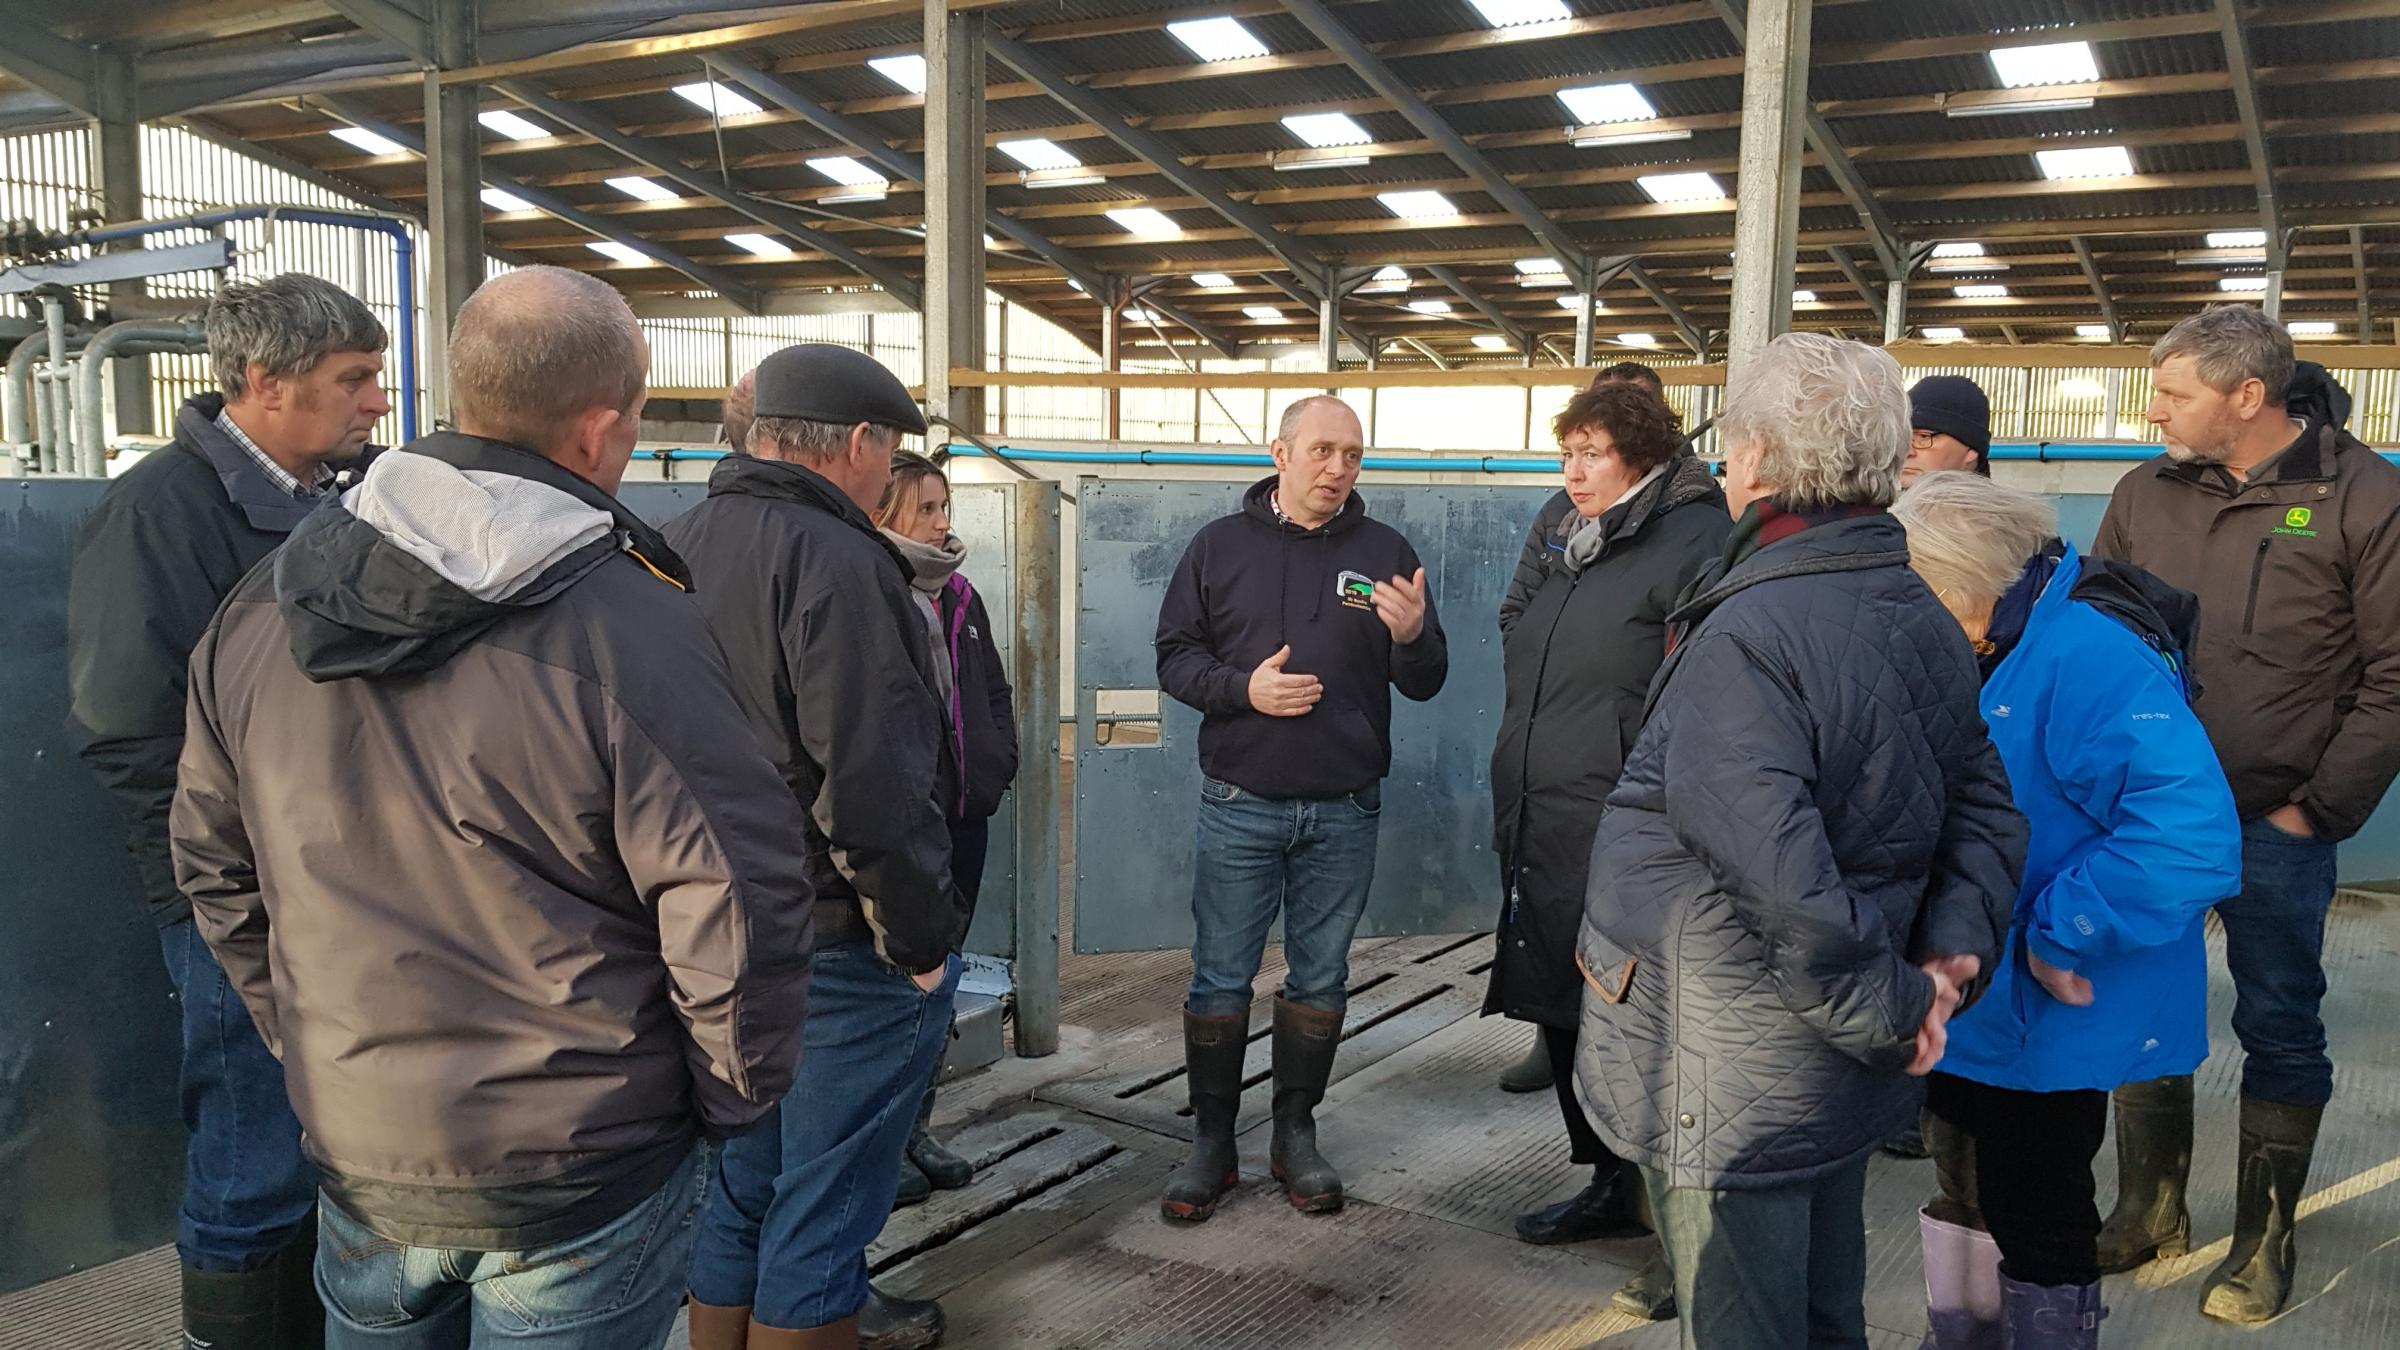 Helen Mary Jones AM discusses the most pressing #FarmingMatters at Treclyn Isaf, Eglwyswrw